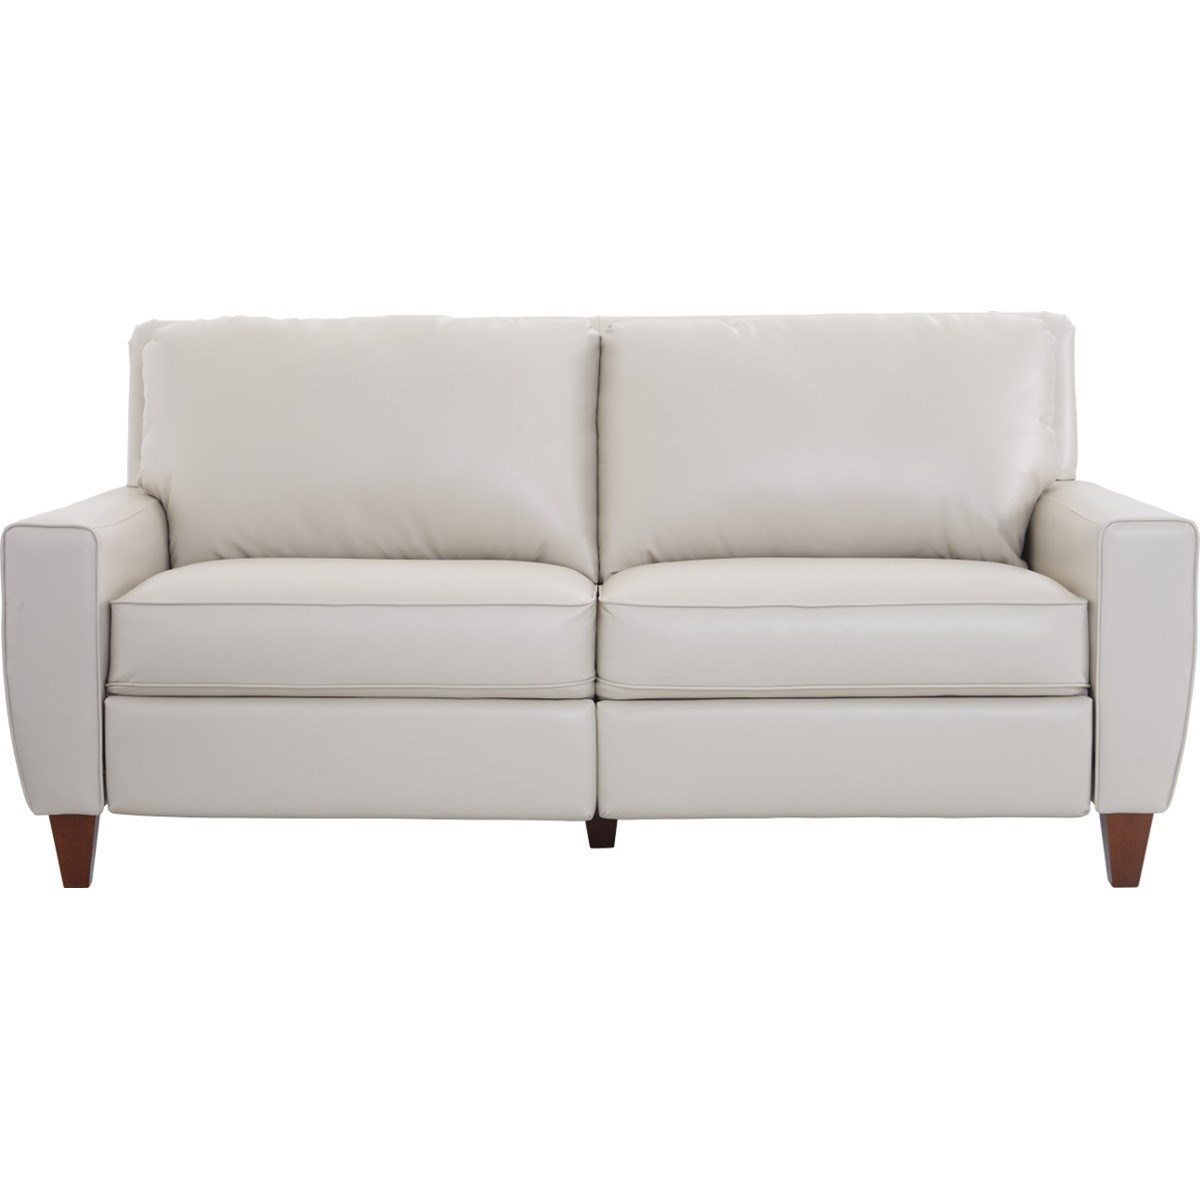 La Z Boy Edie Duo™ Power Reclining Two Seat Sofa With USB Charging